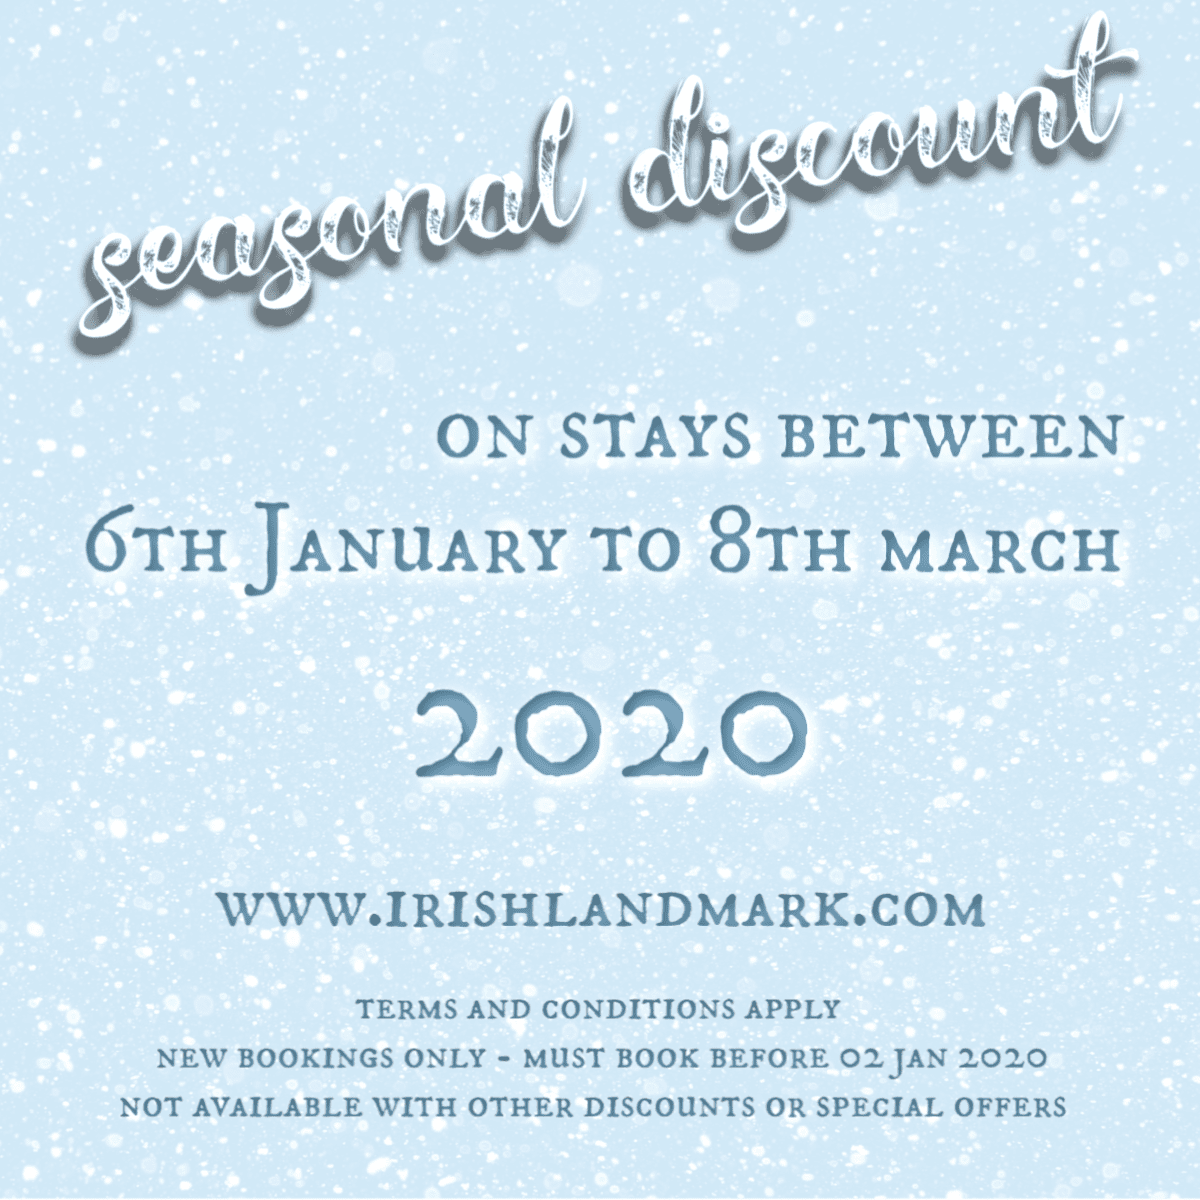 Seasonal Discounts January to March 2020